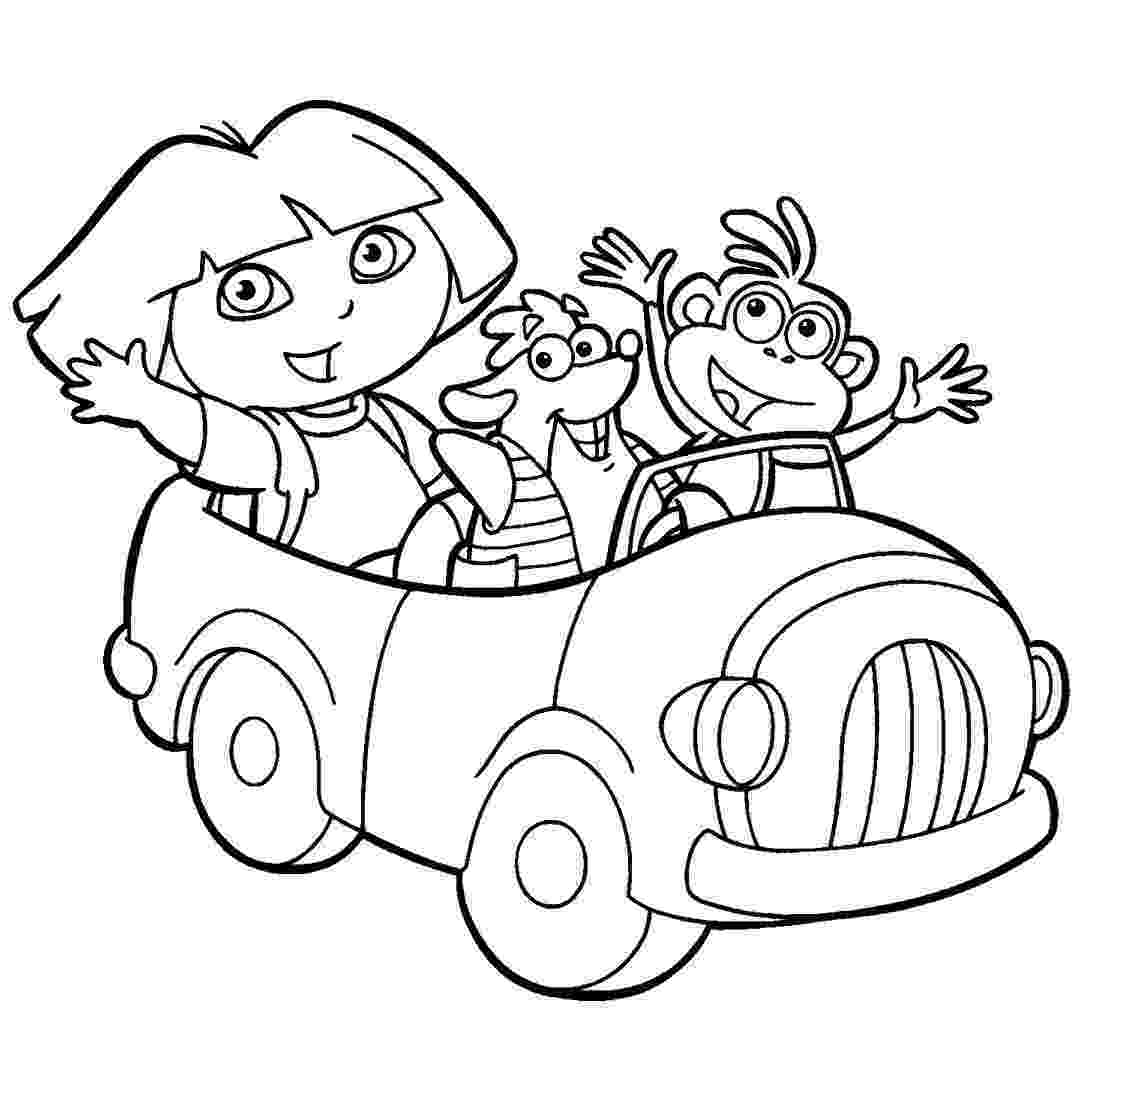 dora the explorer coloring pages free kids coloring pages dora the explorer coloring pages dora free coloring the pages explorer